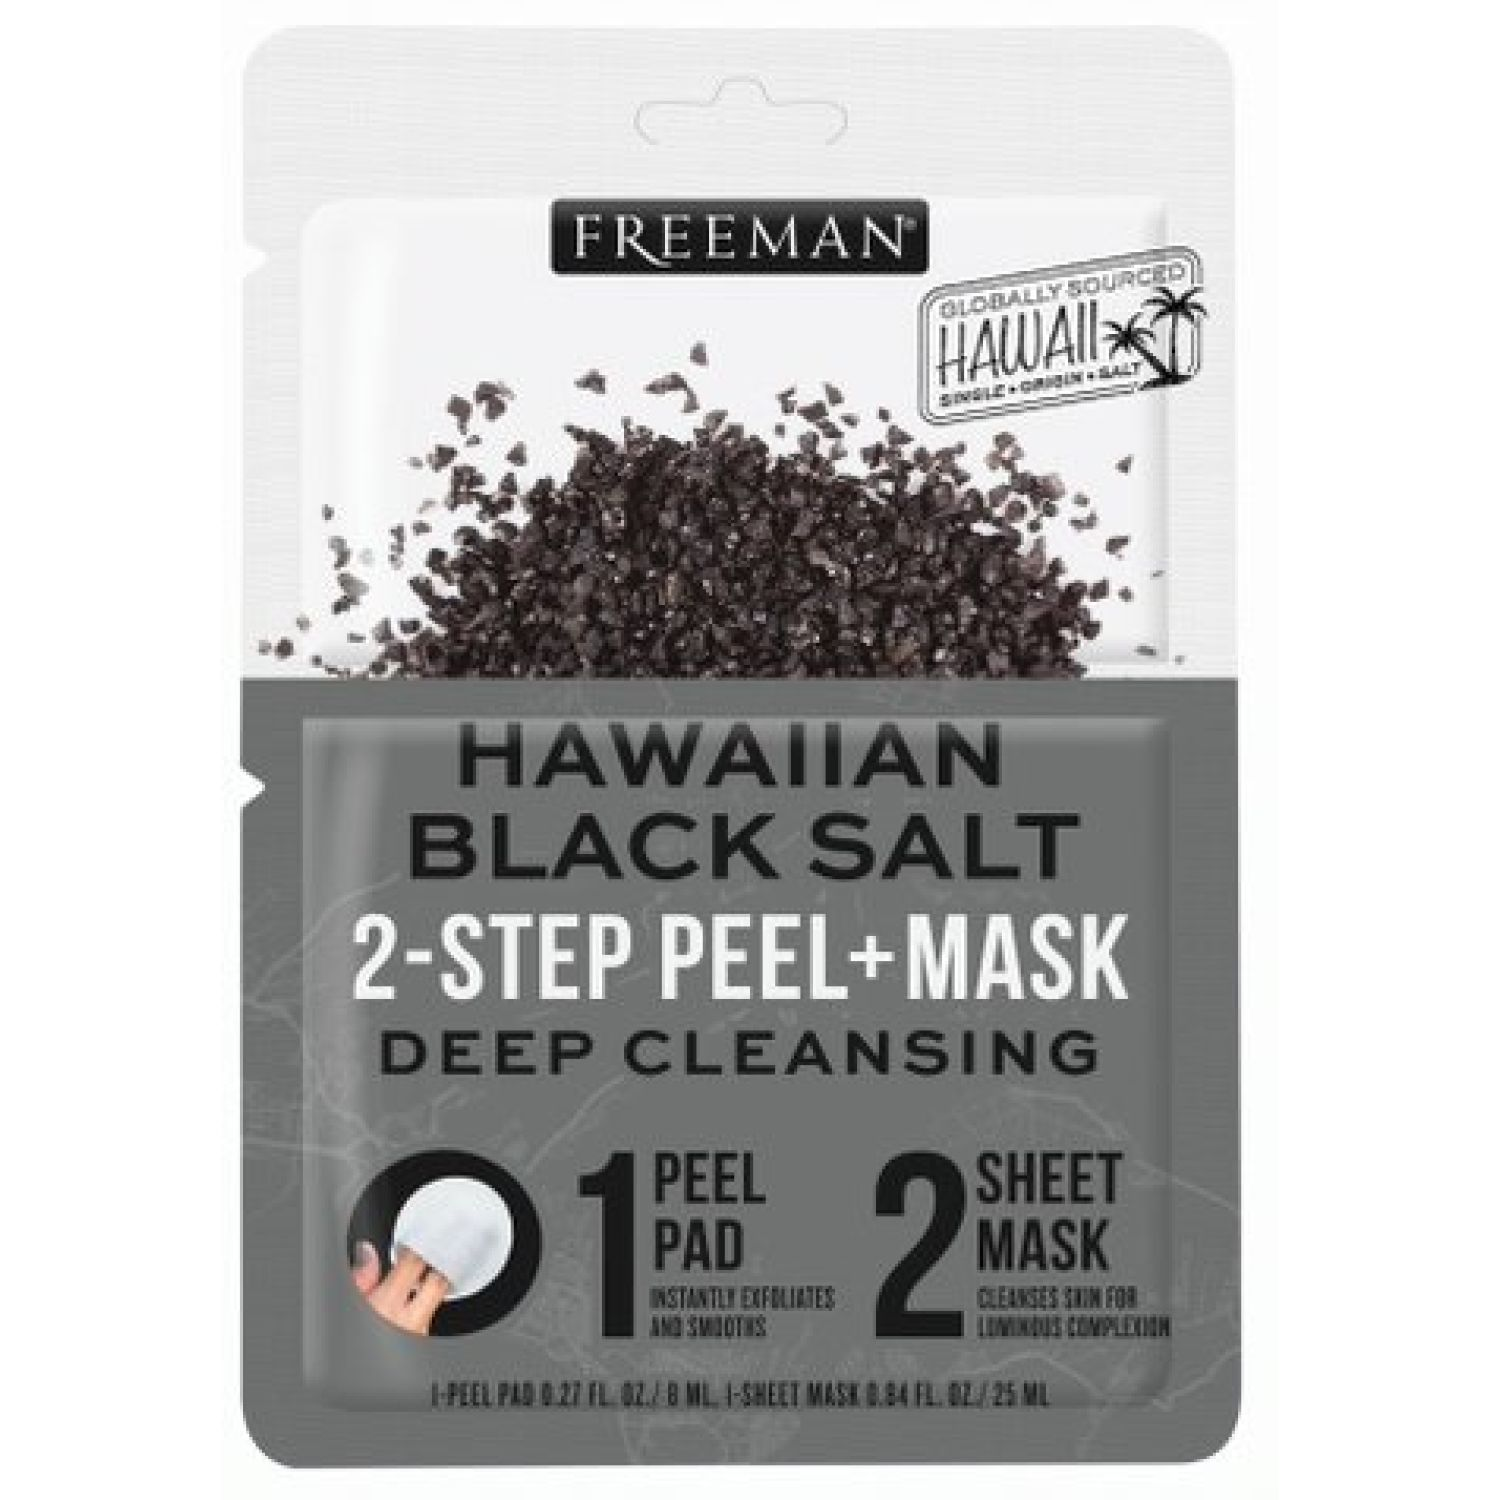 FREEMAN Mascarilla Tela Hawaiian Black Salt Blanco / negro Mascarillas